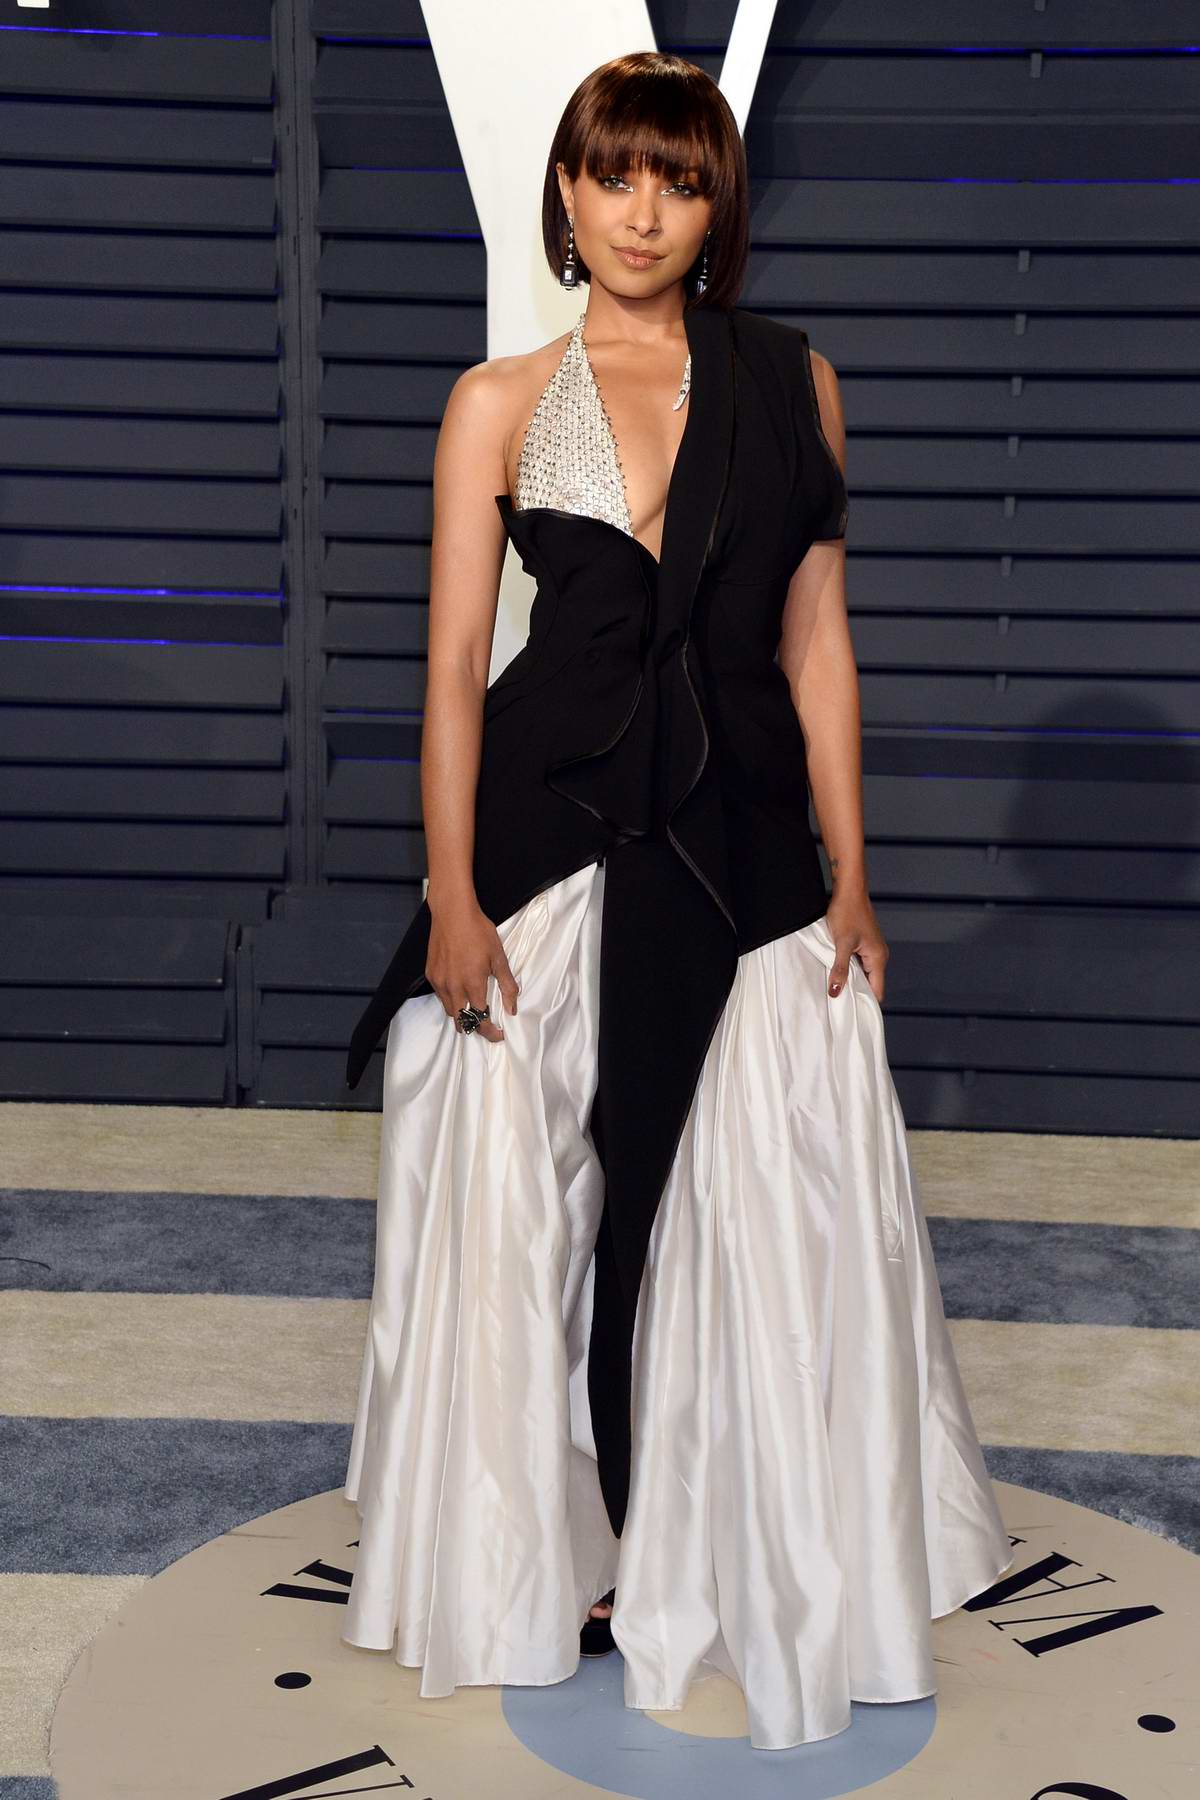 Kat Graham attends the Vanity Fair Oscar Party at Wallis Annenberg Center for the Performing Arts in Beverly Hills, California